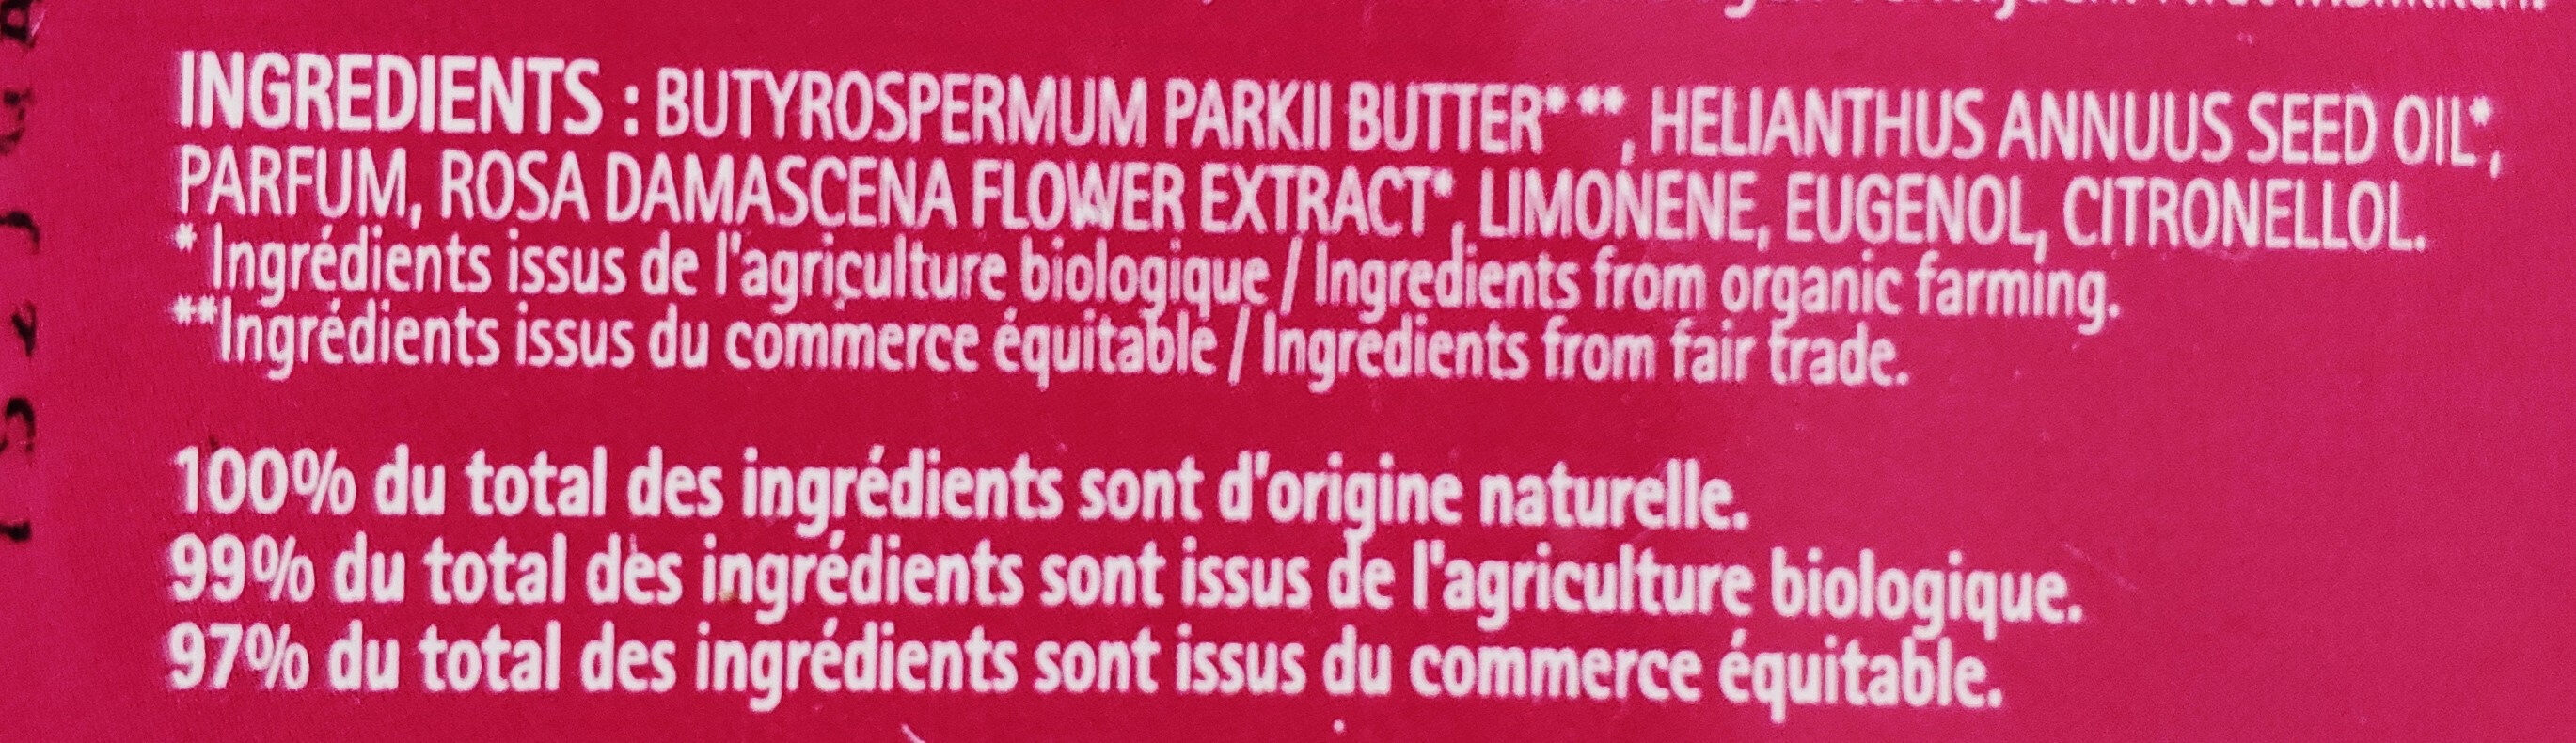 Baume karité rose de Damas - Ingredients - fr